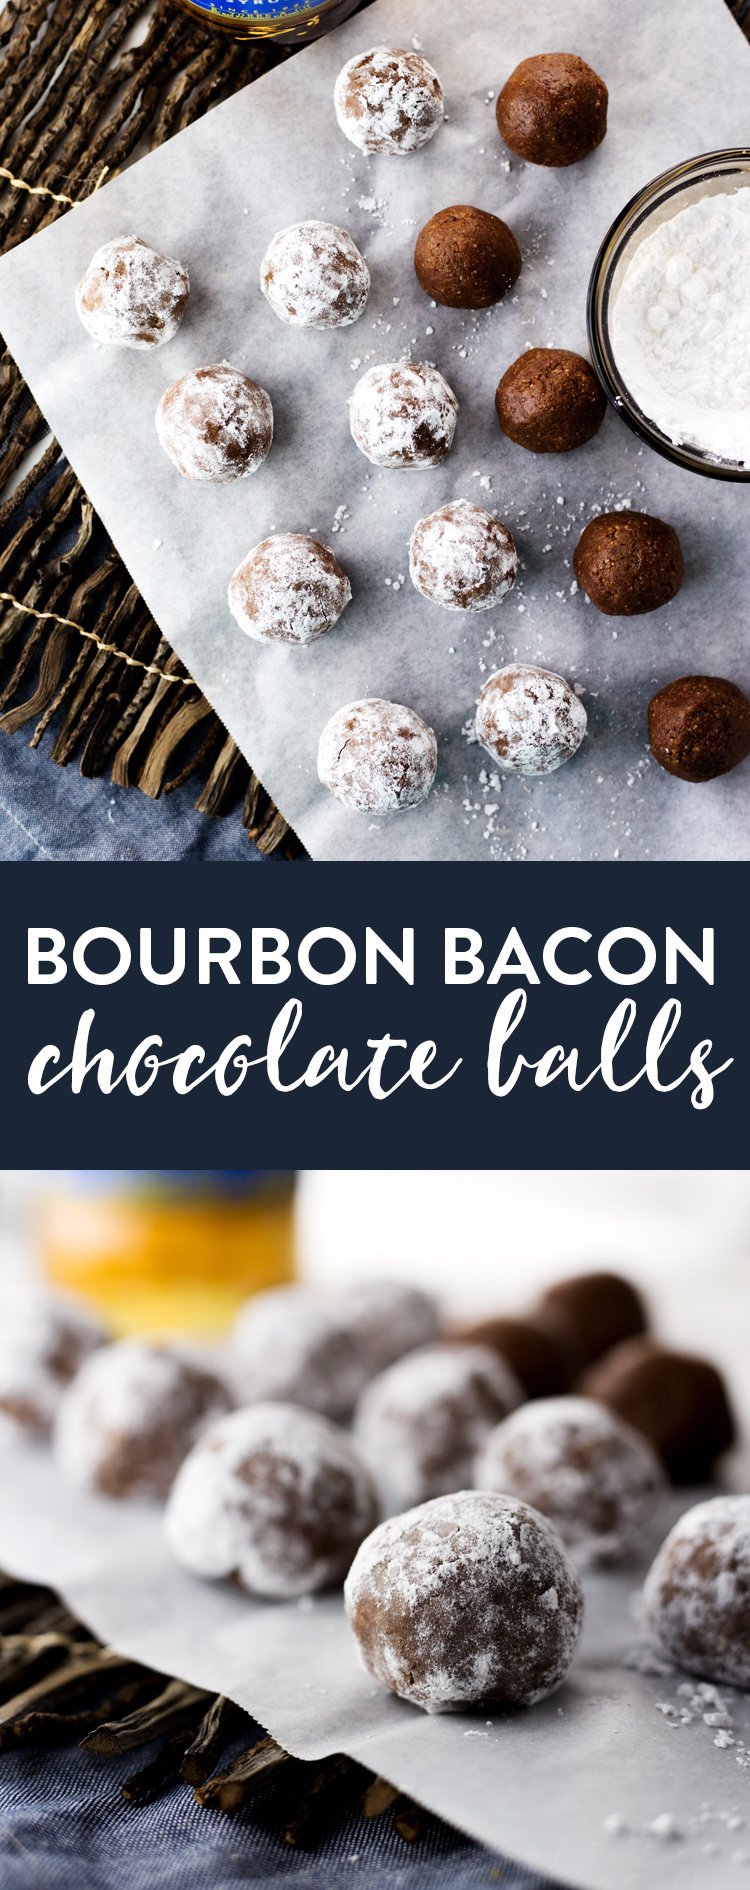 A sweet treat that takes almost no time to make; get your hands on these Bourbon Bacon Chocolate Balls and enjoy dessert today! | asimplepantry.com